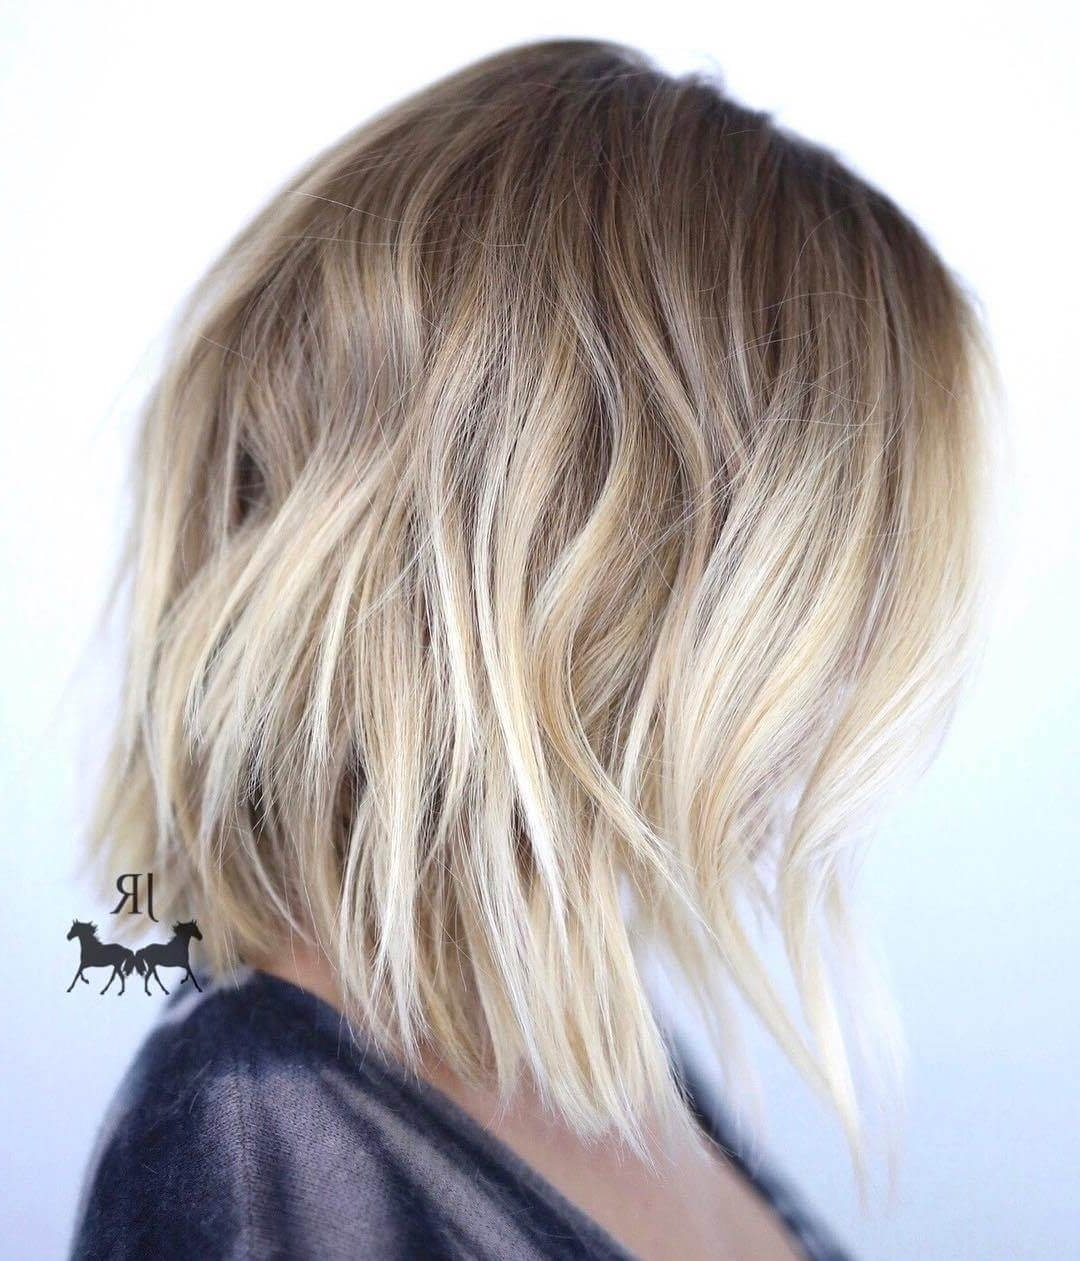 50 Fresh Short Blonde Hair Ideas To Update Your Style In 2018 Intended For Preferred Rooty Long Bob Blonde Hairstyles (View 4 of 20)